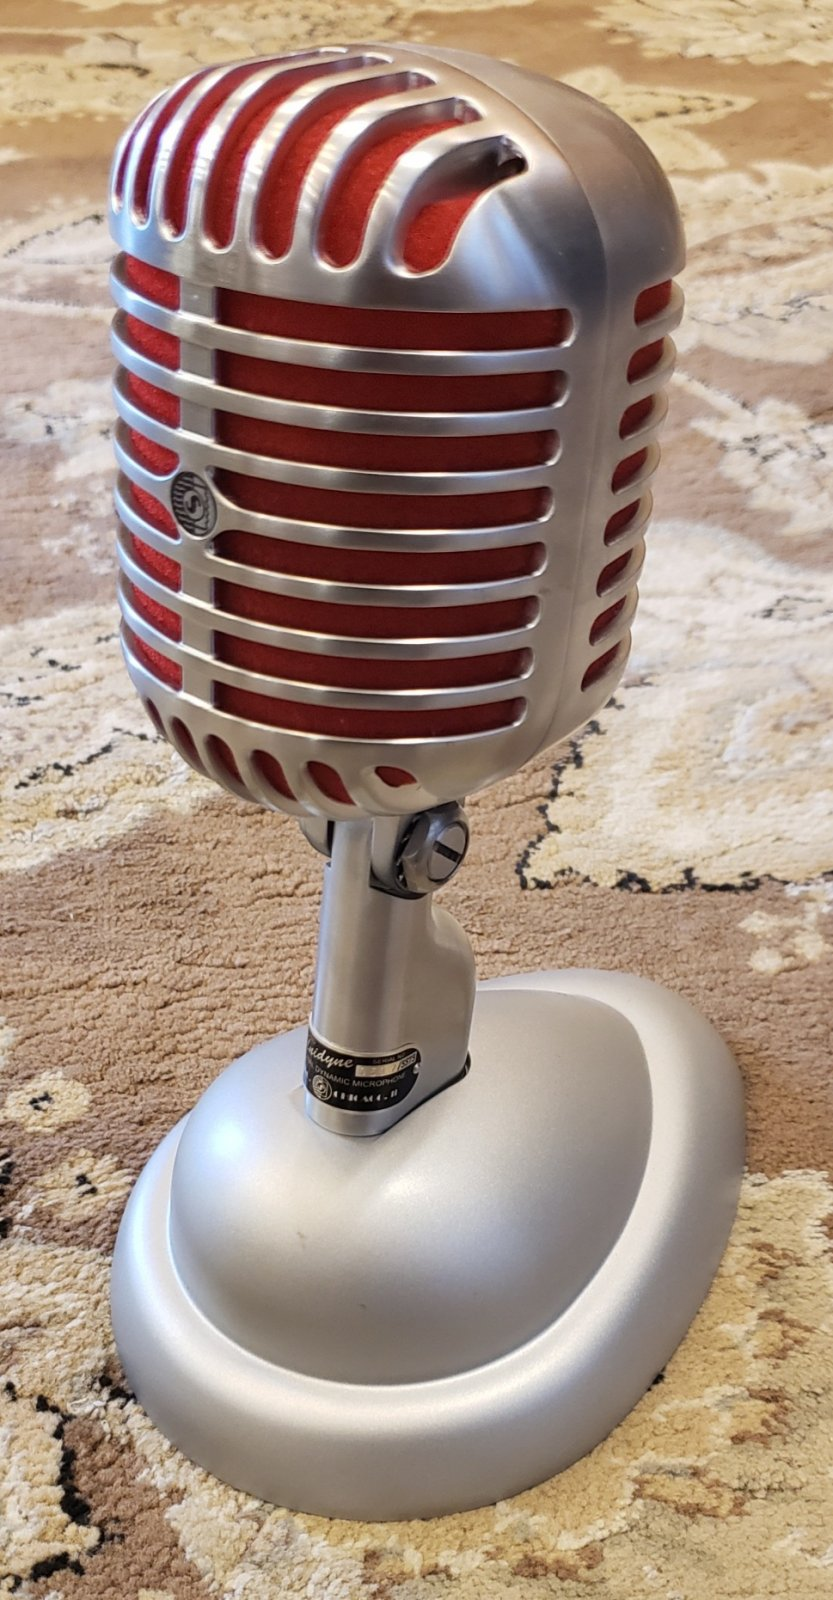 SHURE 75TH ANNIVERSARY 5575LE 521/5575 LIMITED EDITION MICROPHONE WITH CASE STAND CABLE BOX AND COA